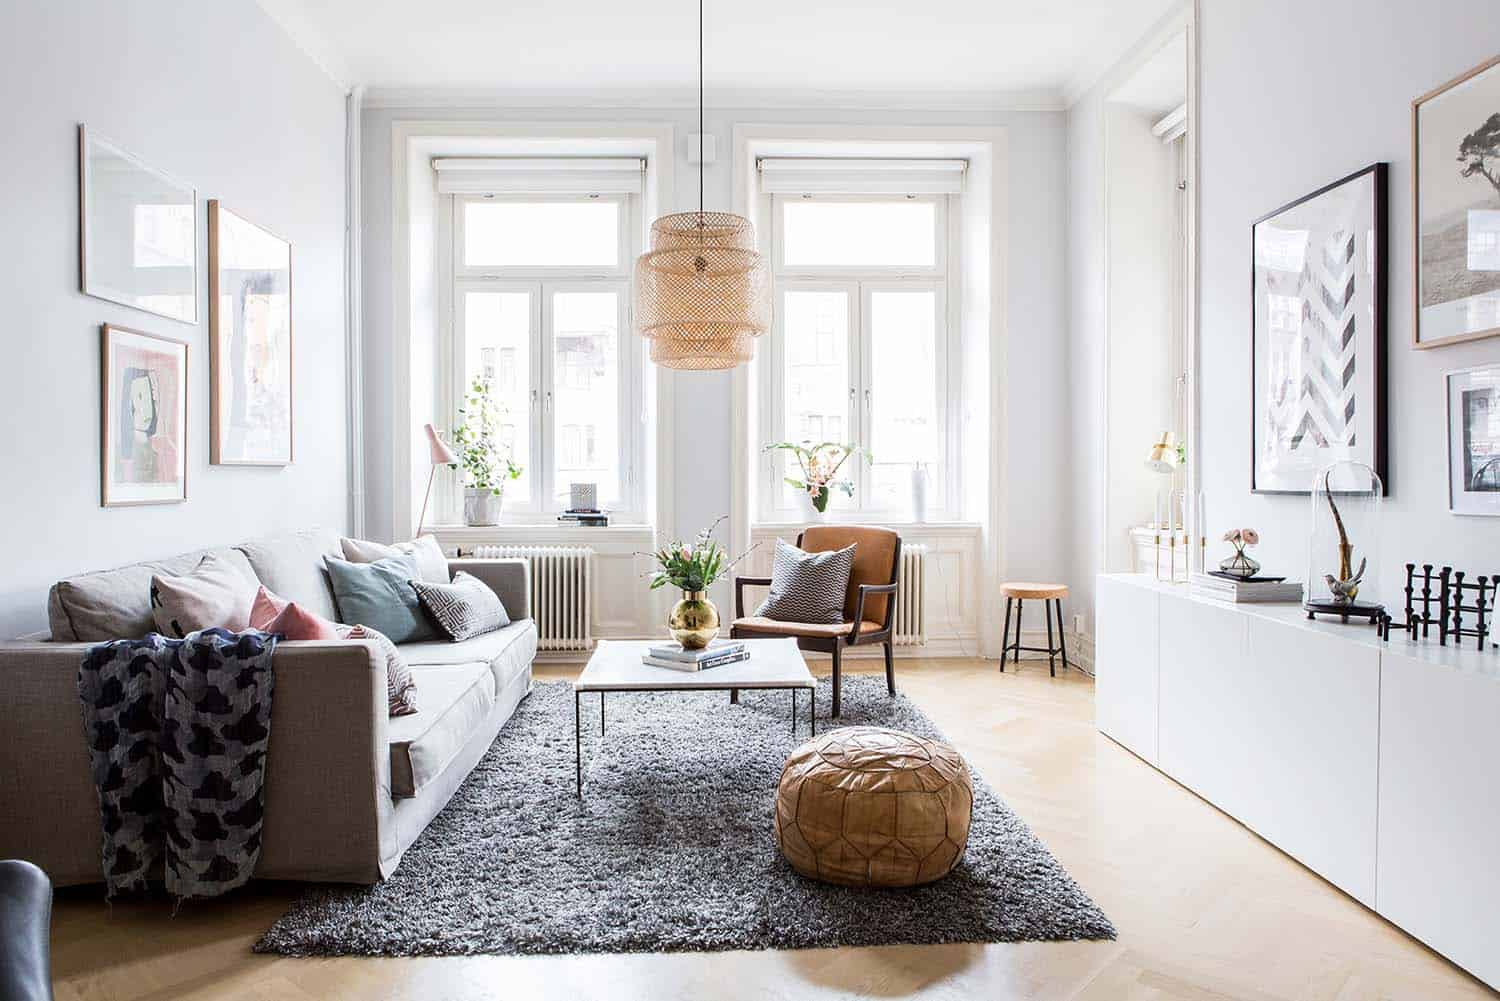 Bright Swedish Apartment With Delightful Interior Design Scheme